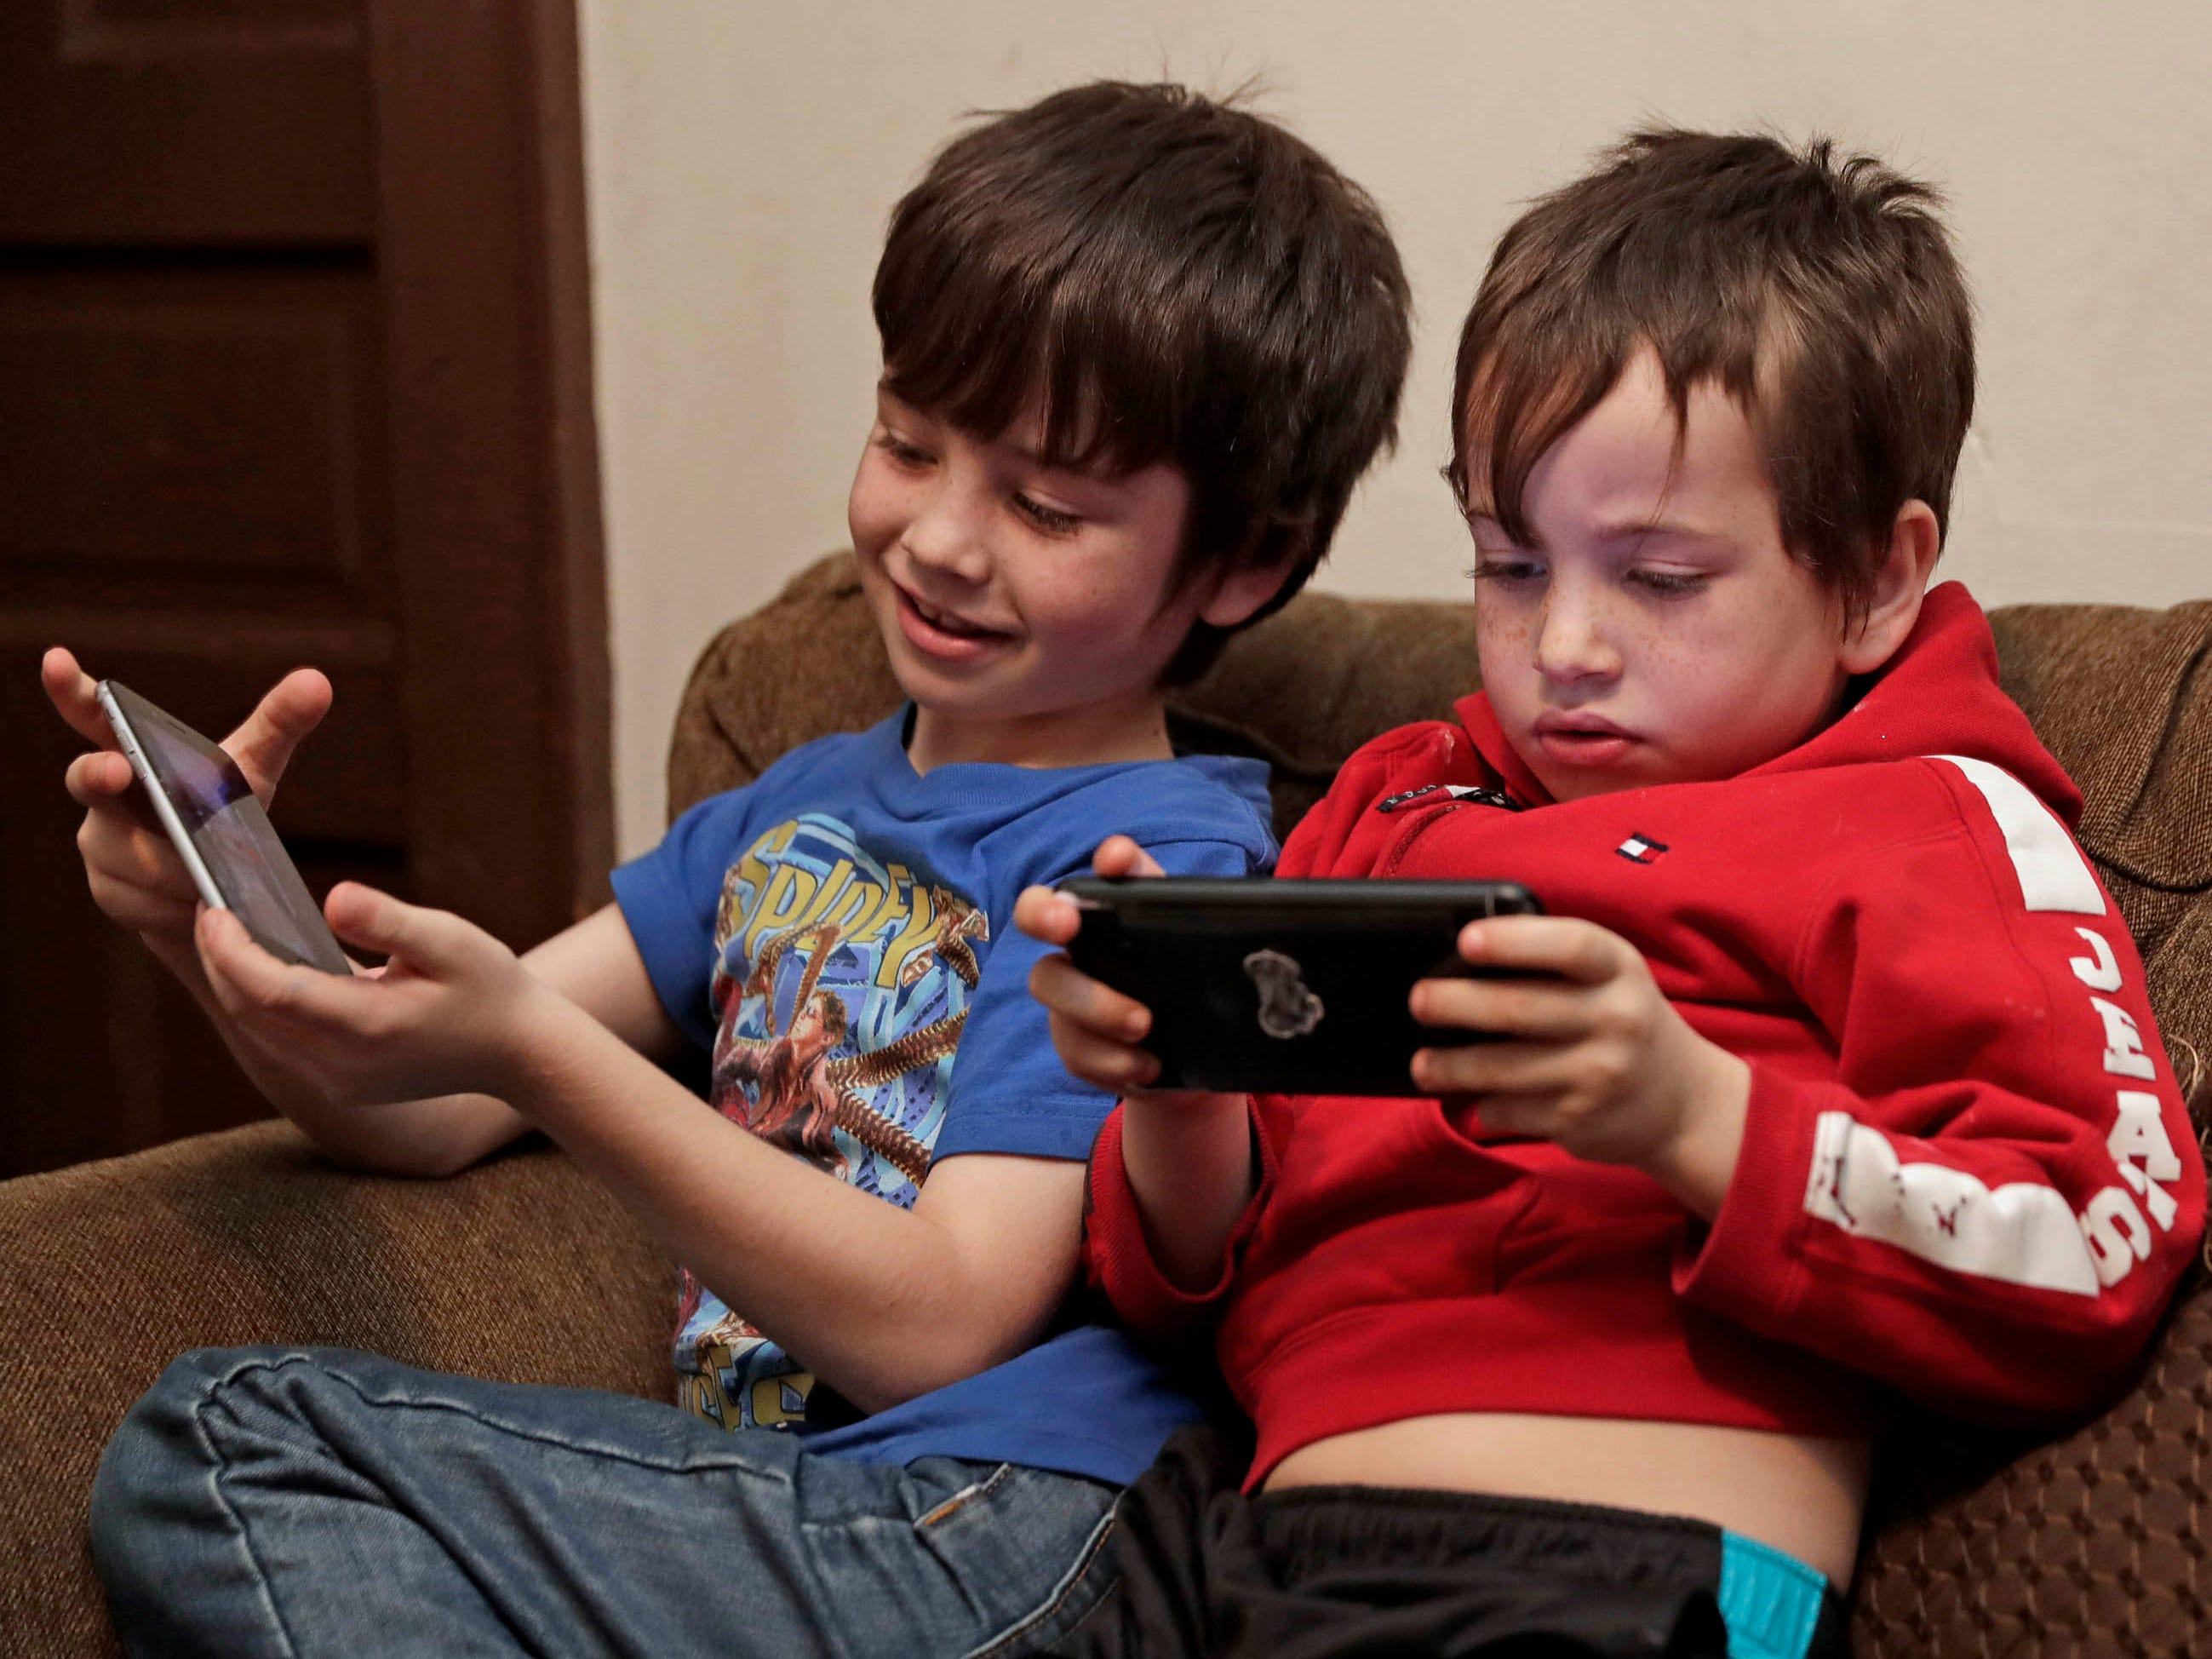 Mohannad Hamdoun, 7, and his brother, Yousif, 5, play video games.